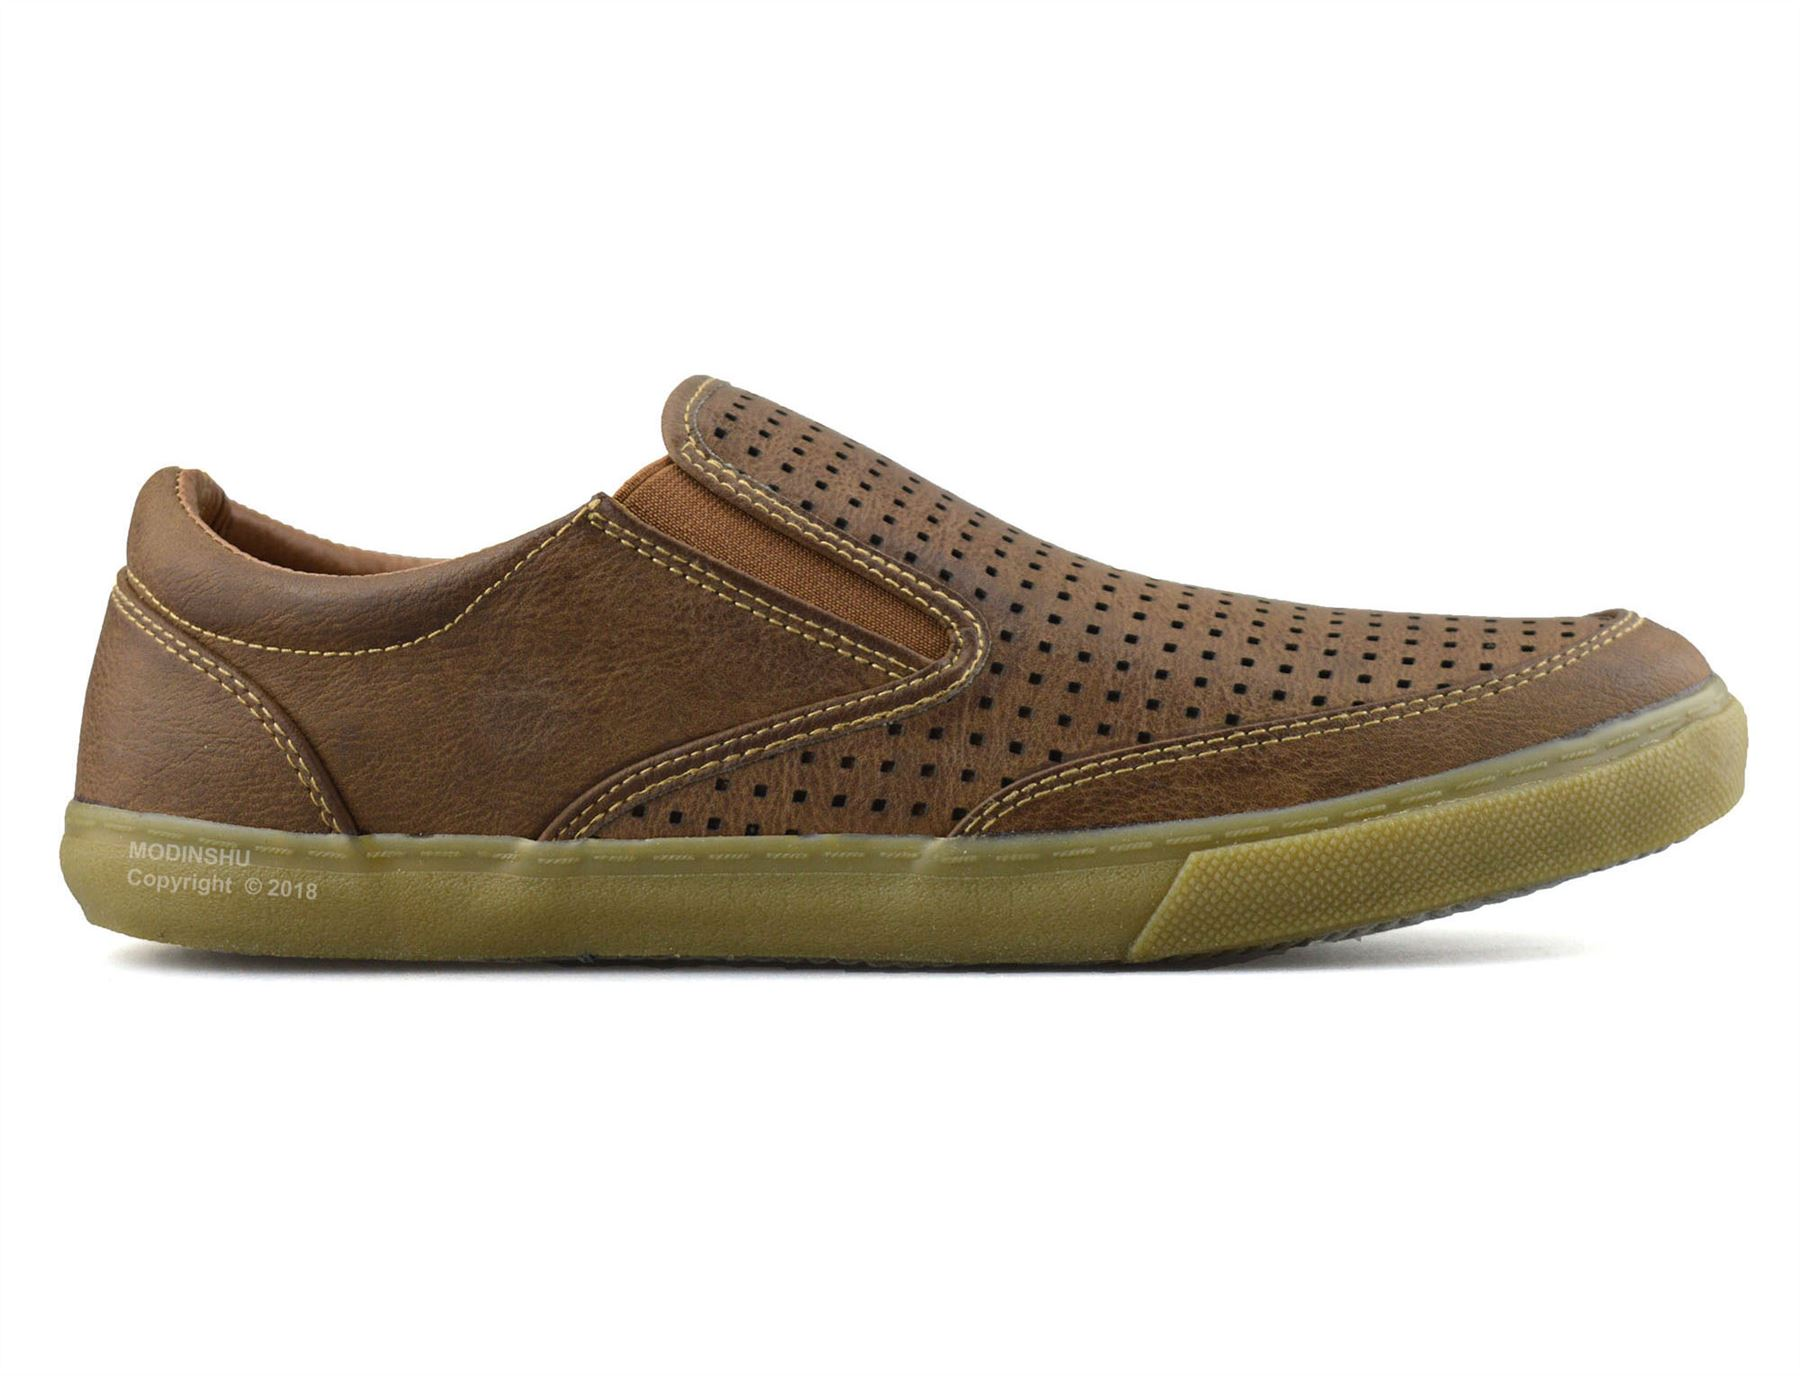 Mens-Casual-Smart-Slip-On-Walking-Moccasin-Loafers-Driving-Deck-Boat-Shoes-Size thumbnail 10